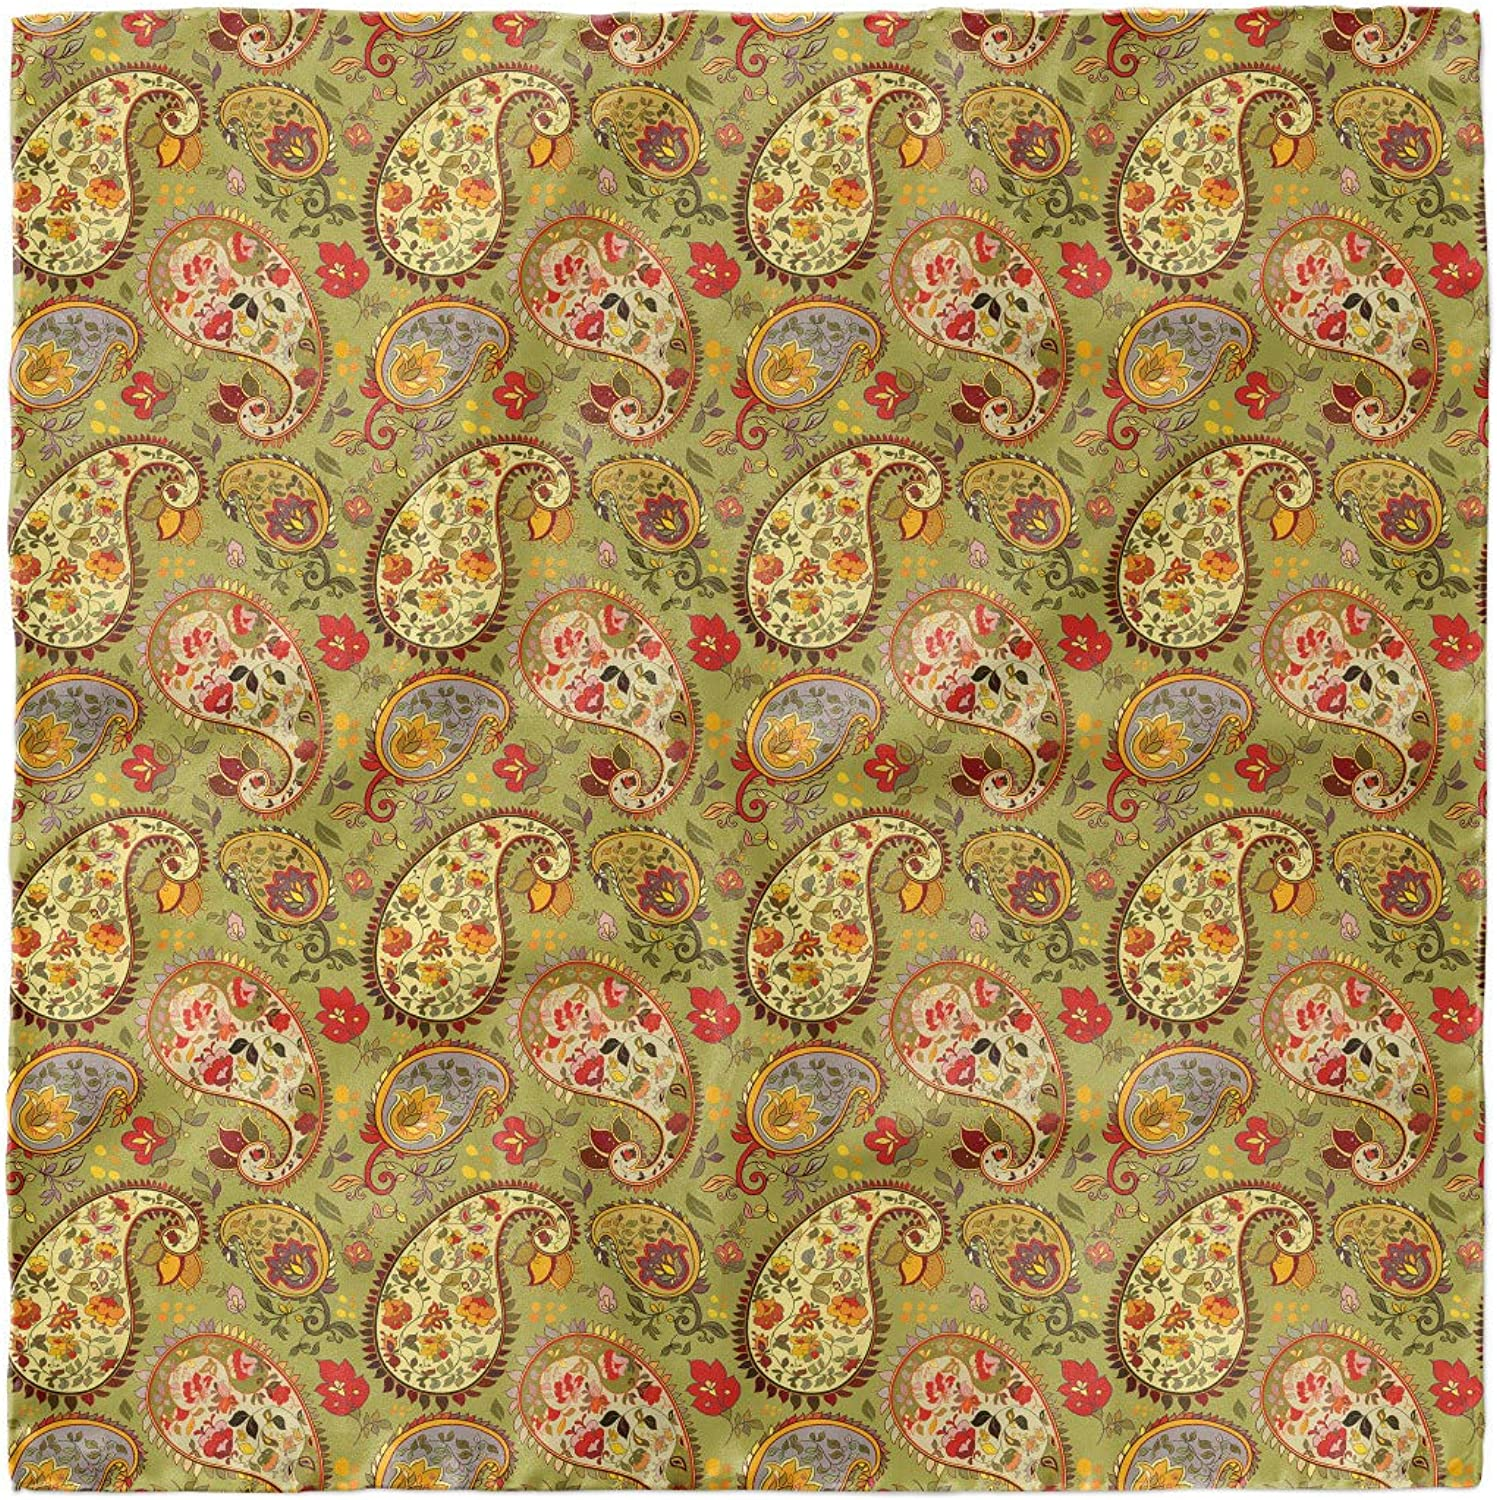 Ambesonne Paisley Headscarf Hijab Scarf Colorful Persian Style